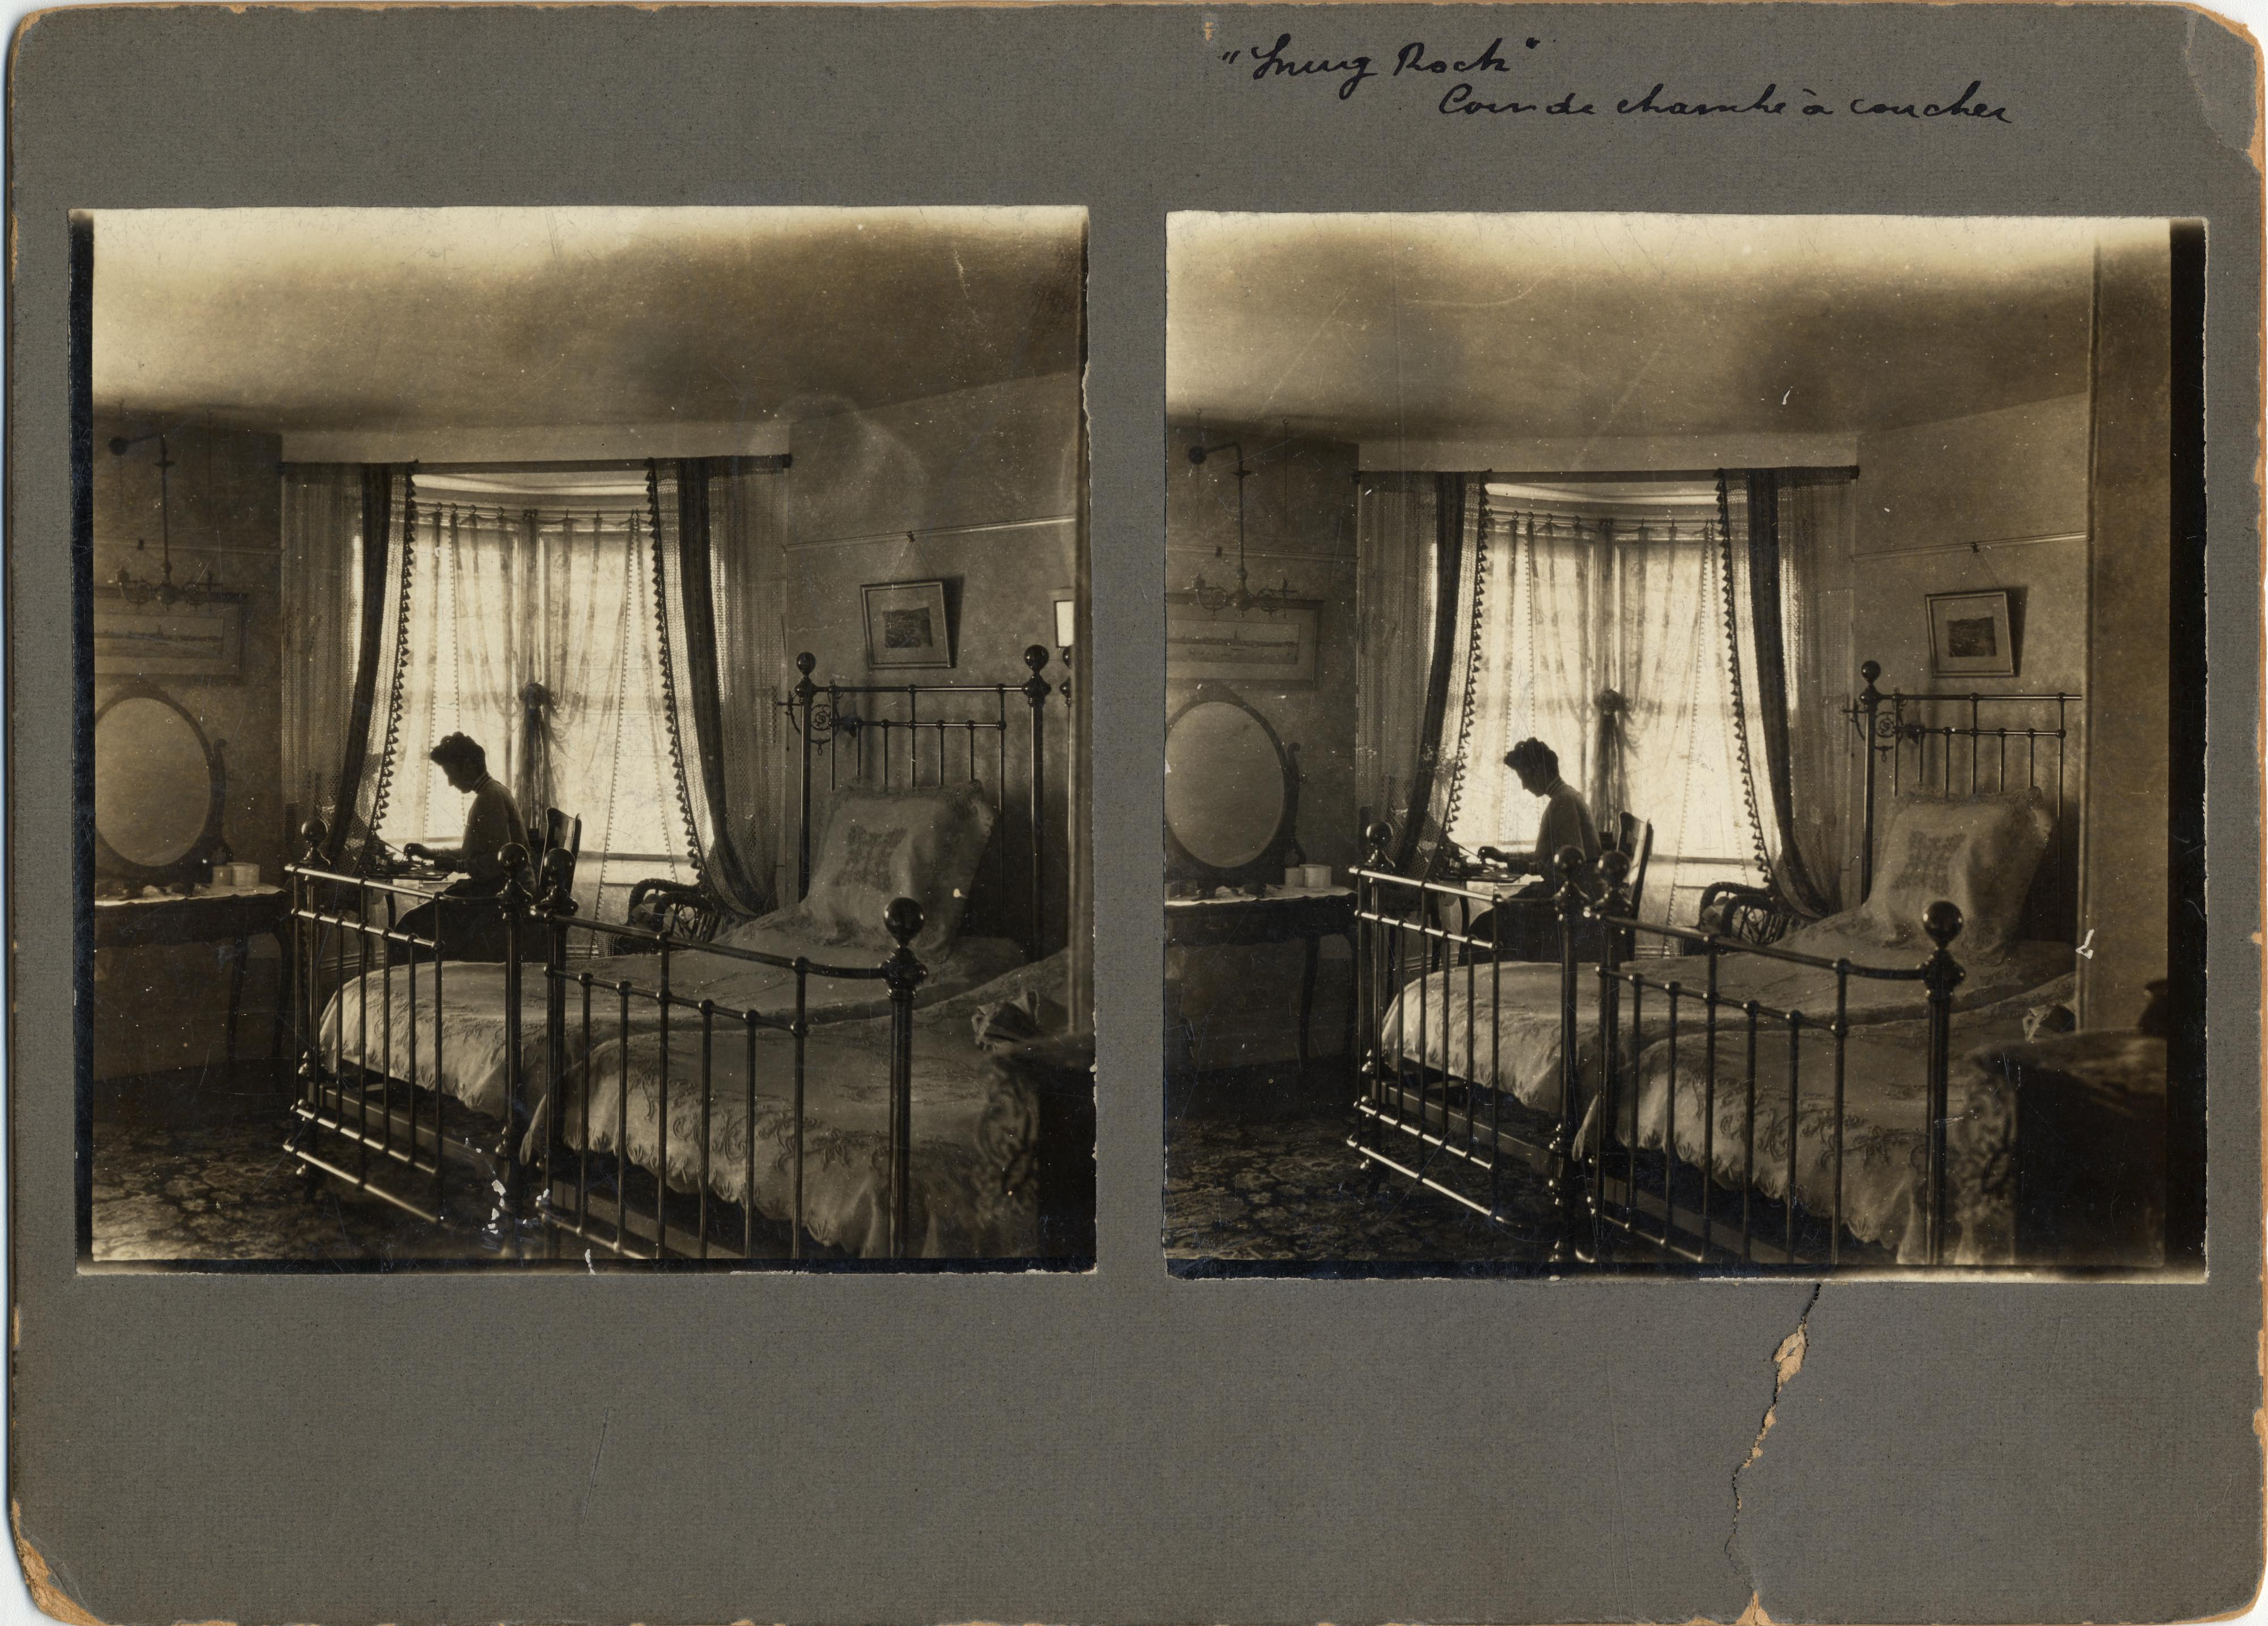 NMAH Archives CenterLeo H. Baekeland Papers0005Box 45Envelope 9-10Stereograph of Celine Baekeland in front of a bedroom window at Snug Rock.